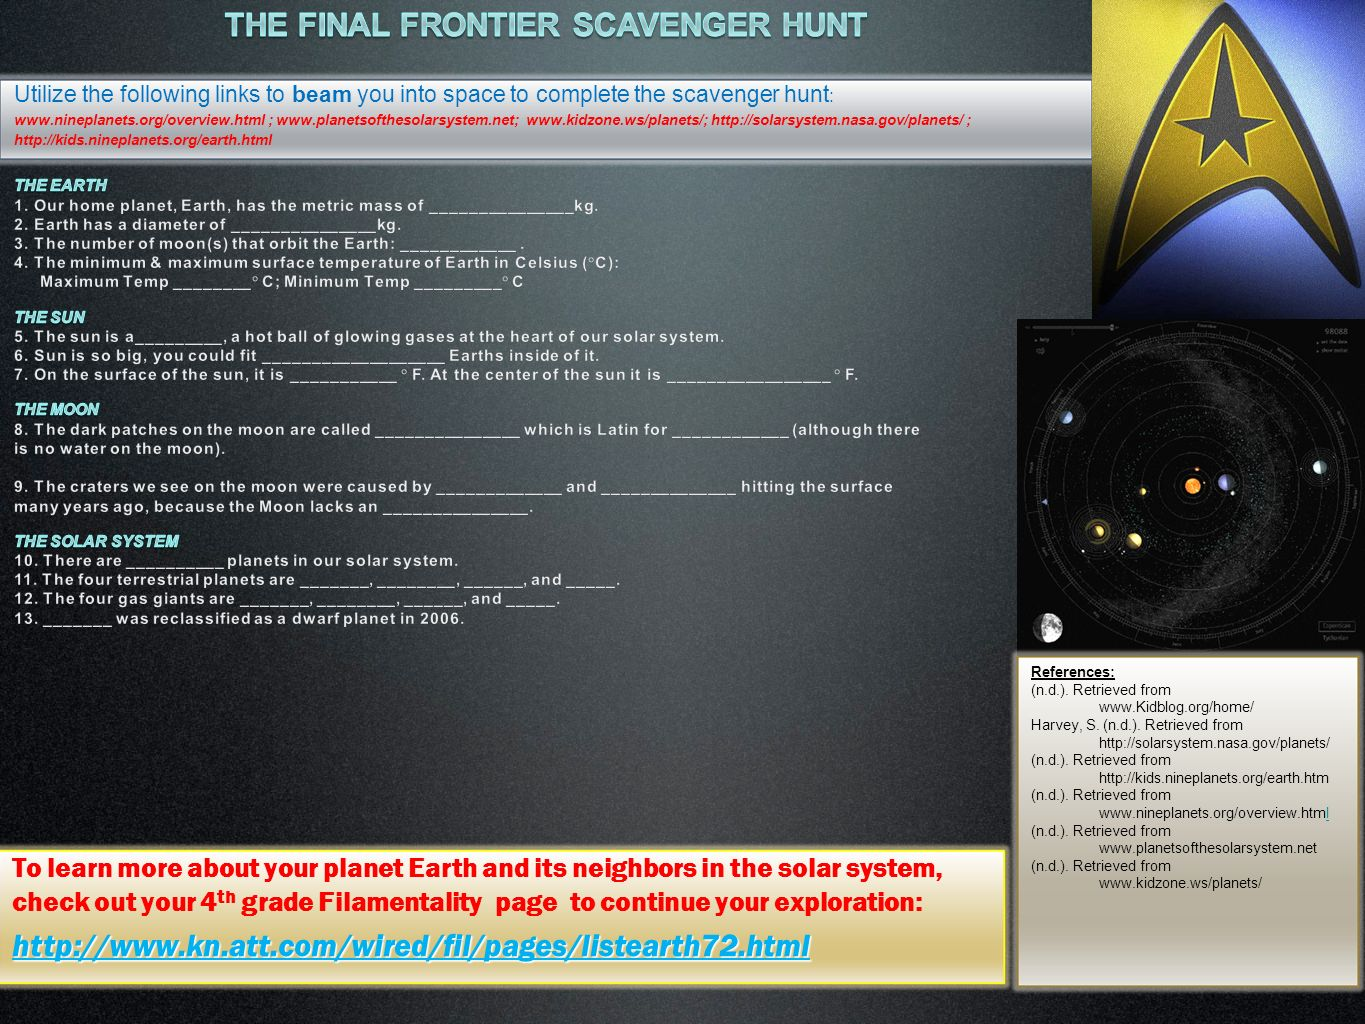 The final frontier Scavenger Hunt